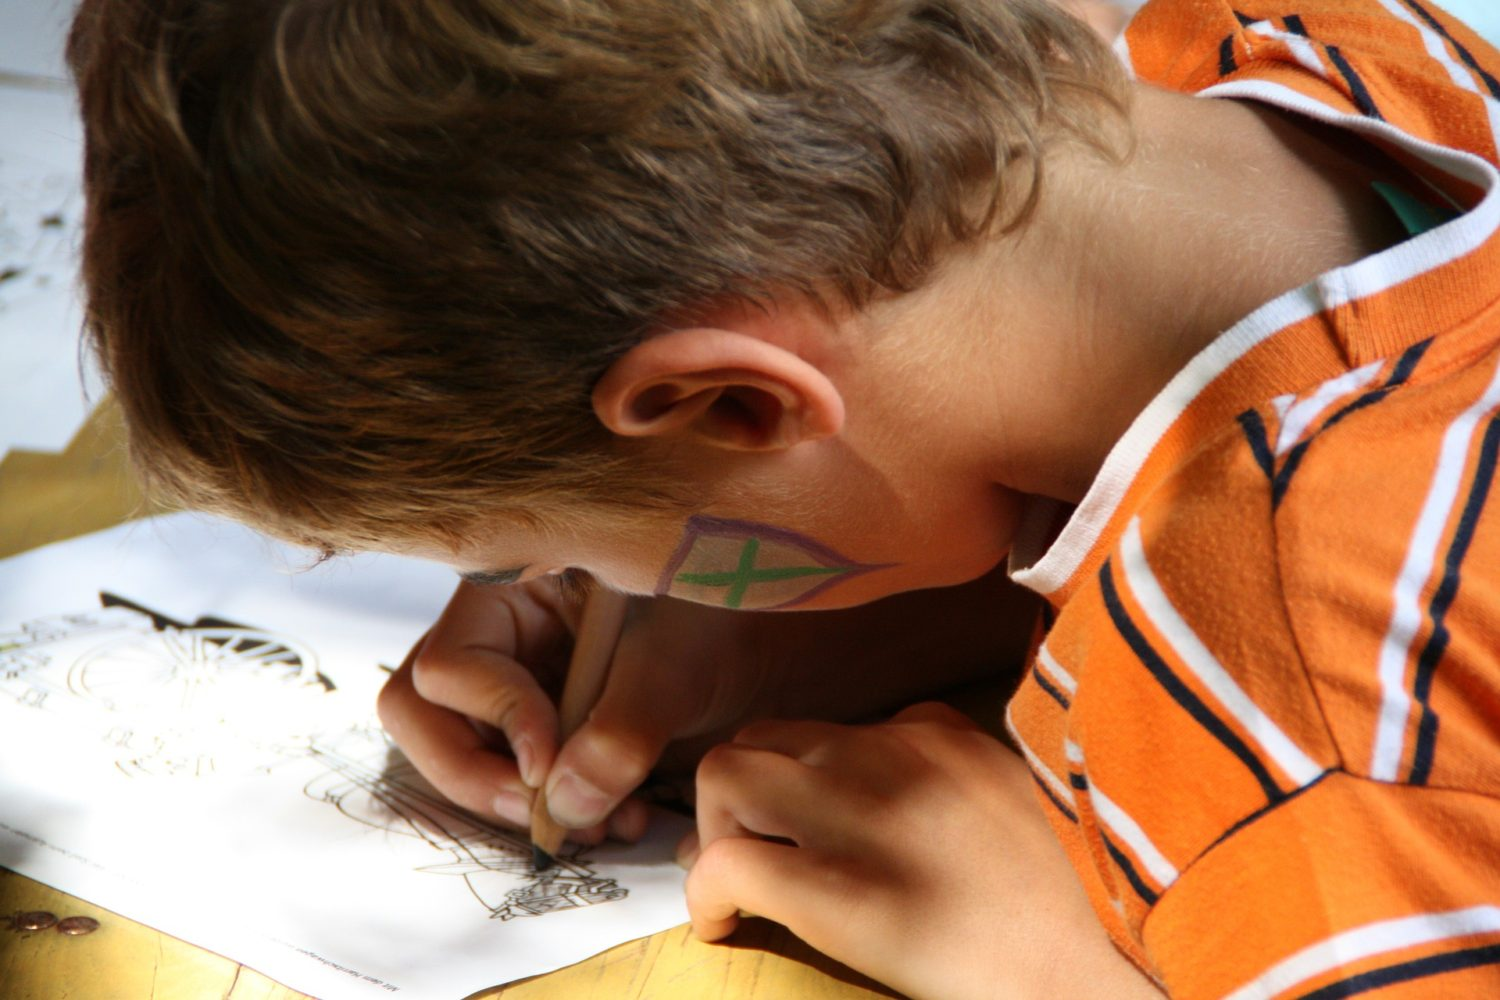 Close up of side of head and hands of child drawing on a piece of paper on top of a school desk